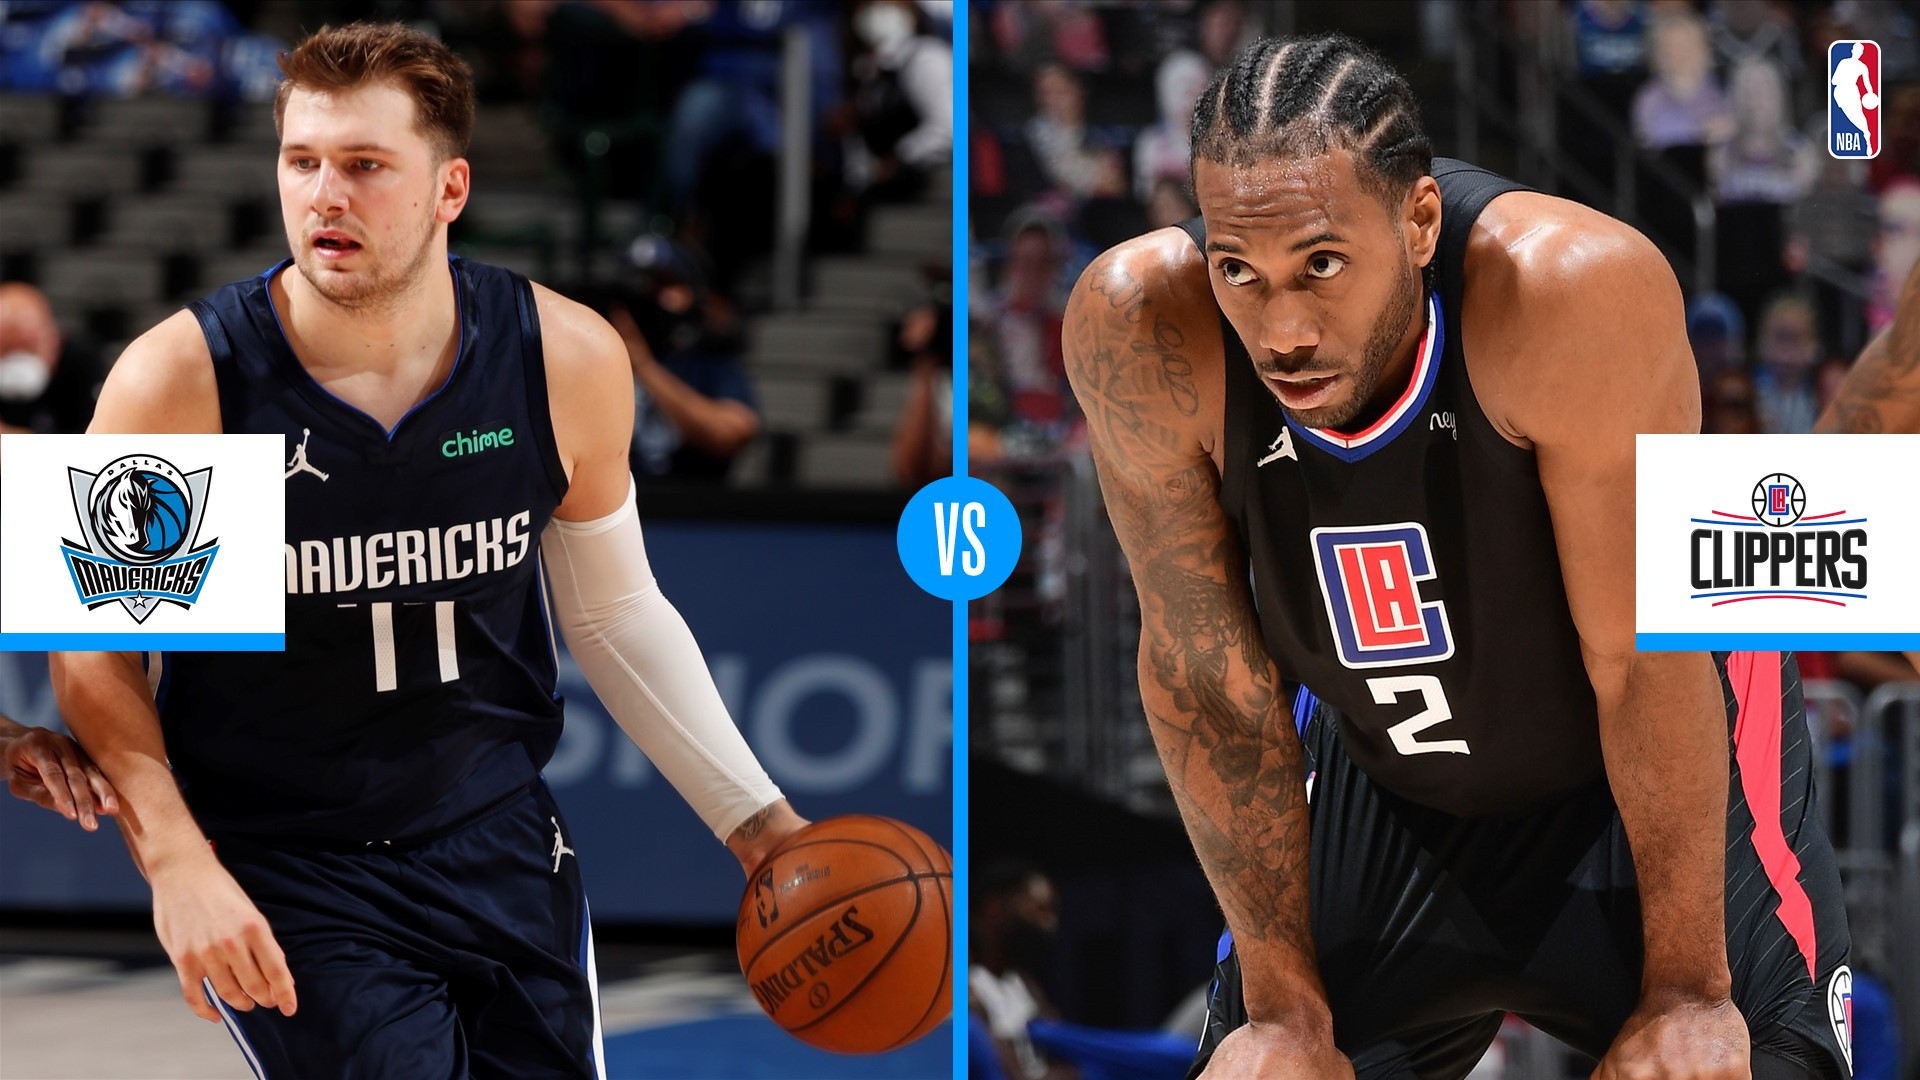 NBA Playoffs 2021: Three stories to watch Match 4 between the Dallas Mavericks and the Los Angeles Clippers |  NBA.com Argentina